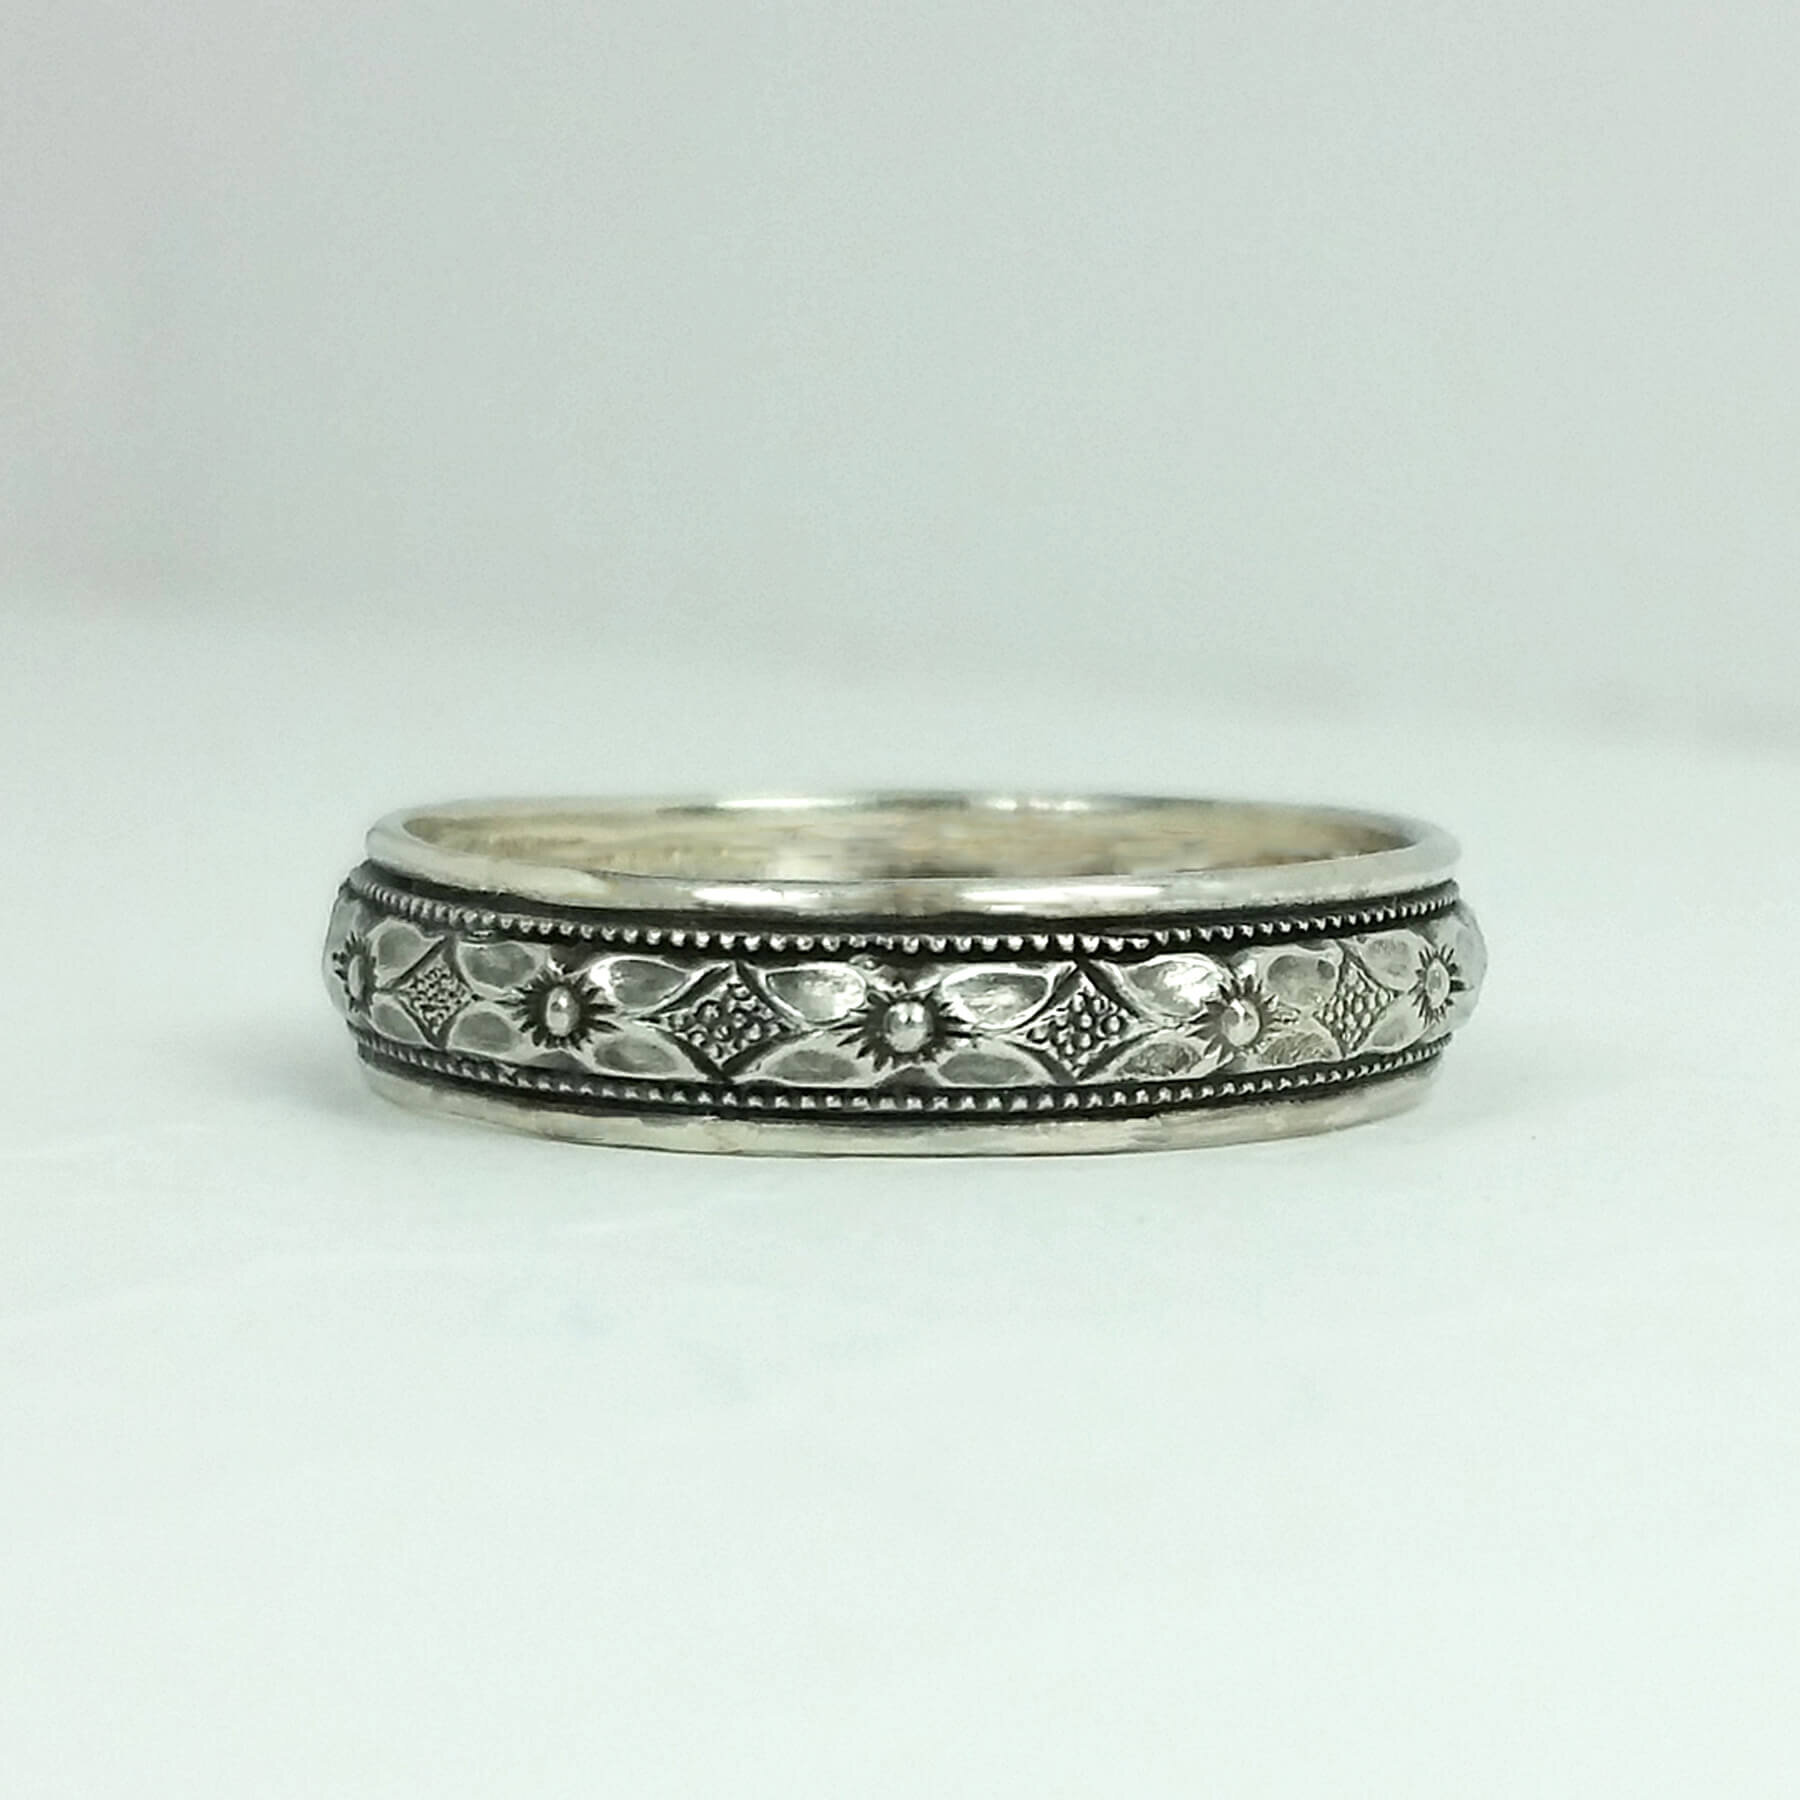 Wedding Bands For Women.Woman S Edwardian Floral Diamond Wedding Band In Sterling Silver Kryzia Kreations Whimsical Nature And Vintage Inspired Artisan Jewelry